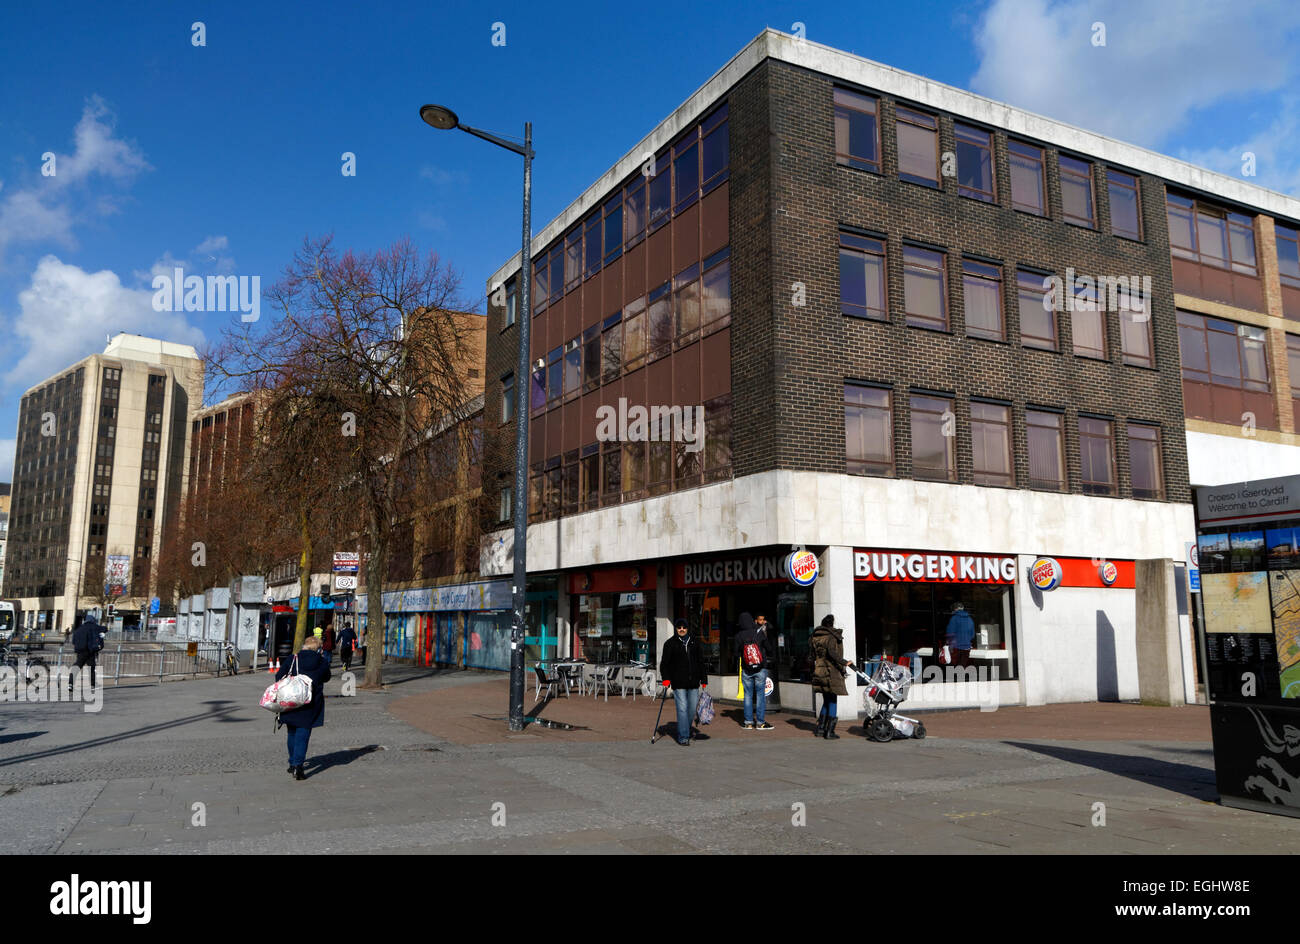 Marland House, Site of the new bus station, Cardiff, South Wales, UK. - Stock Image